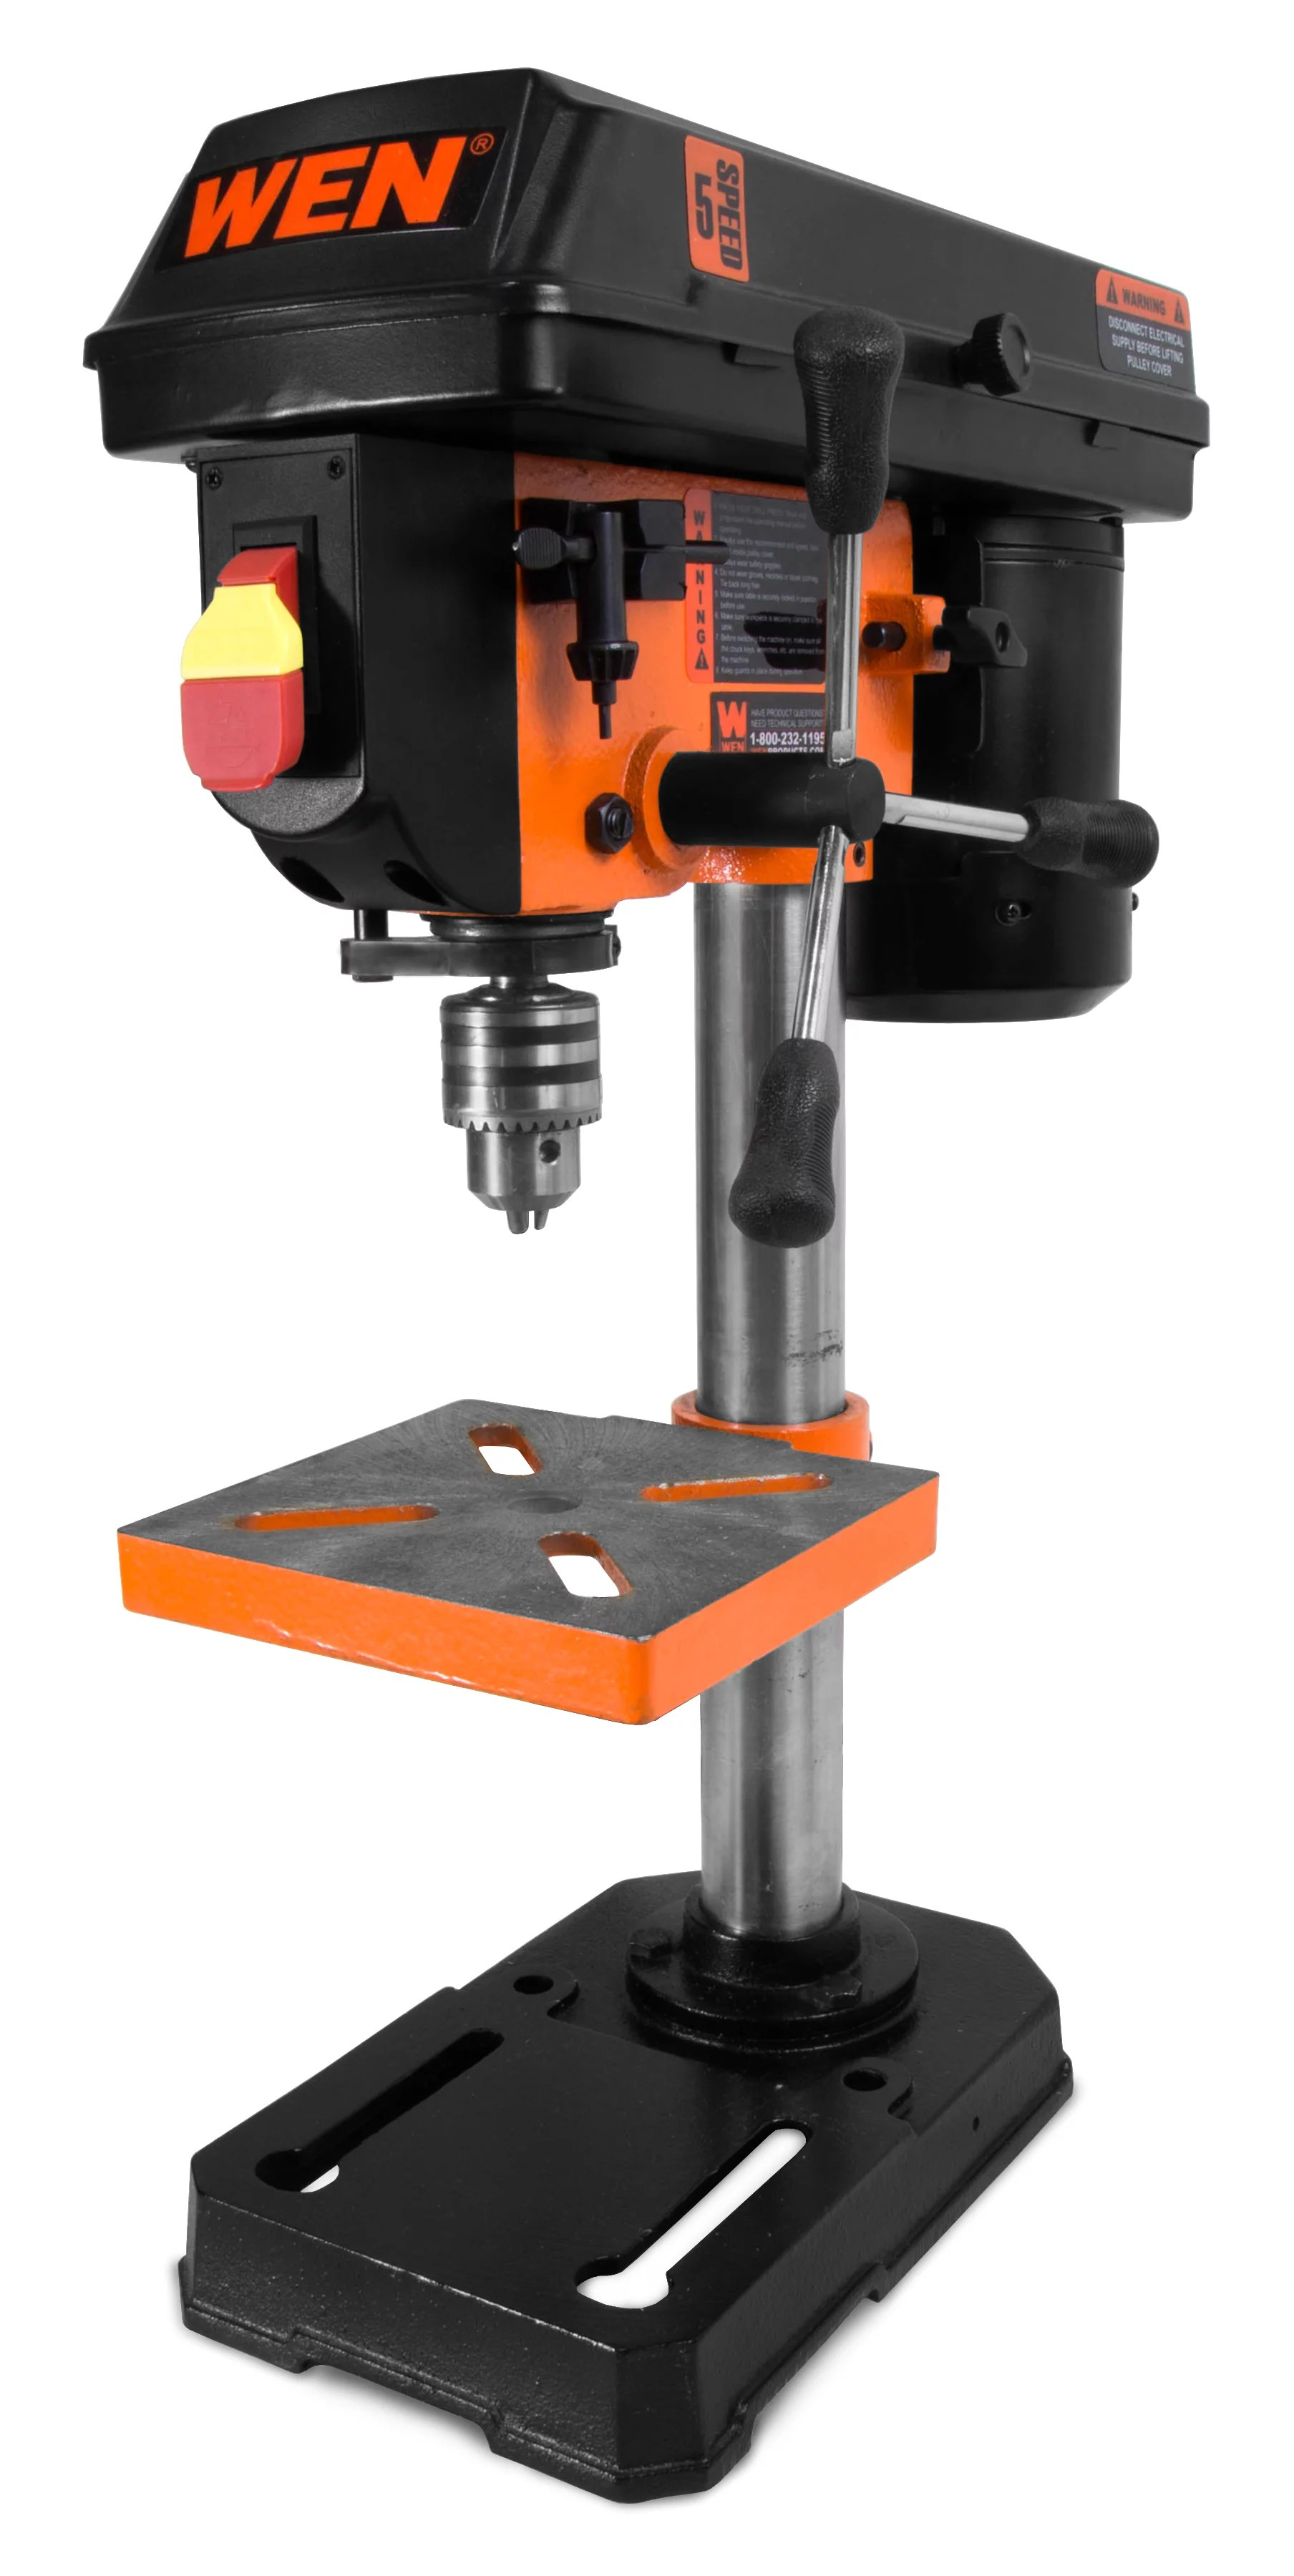 Mastercraft Drill Press Review